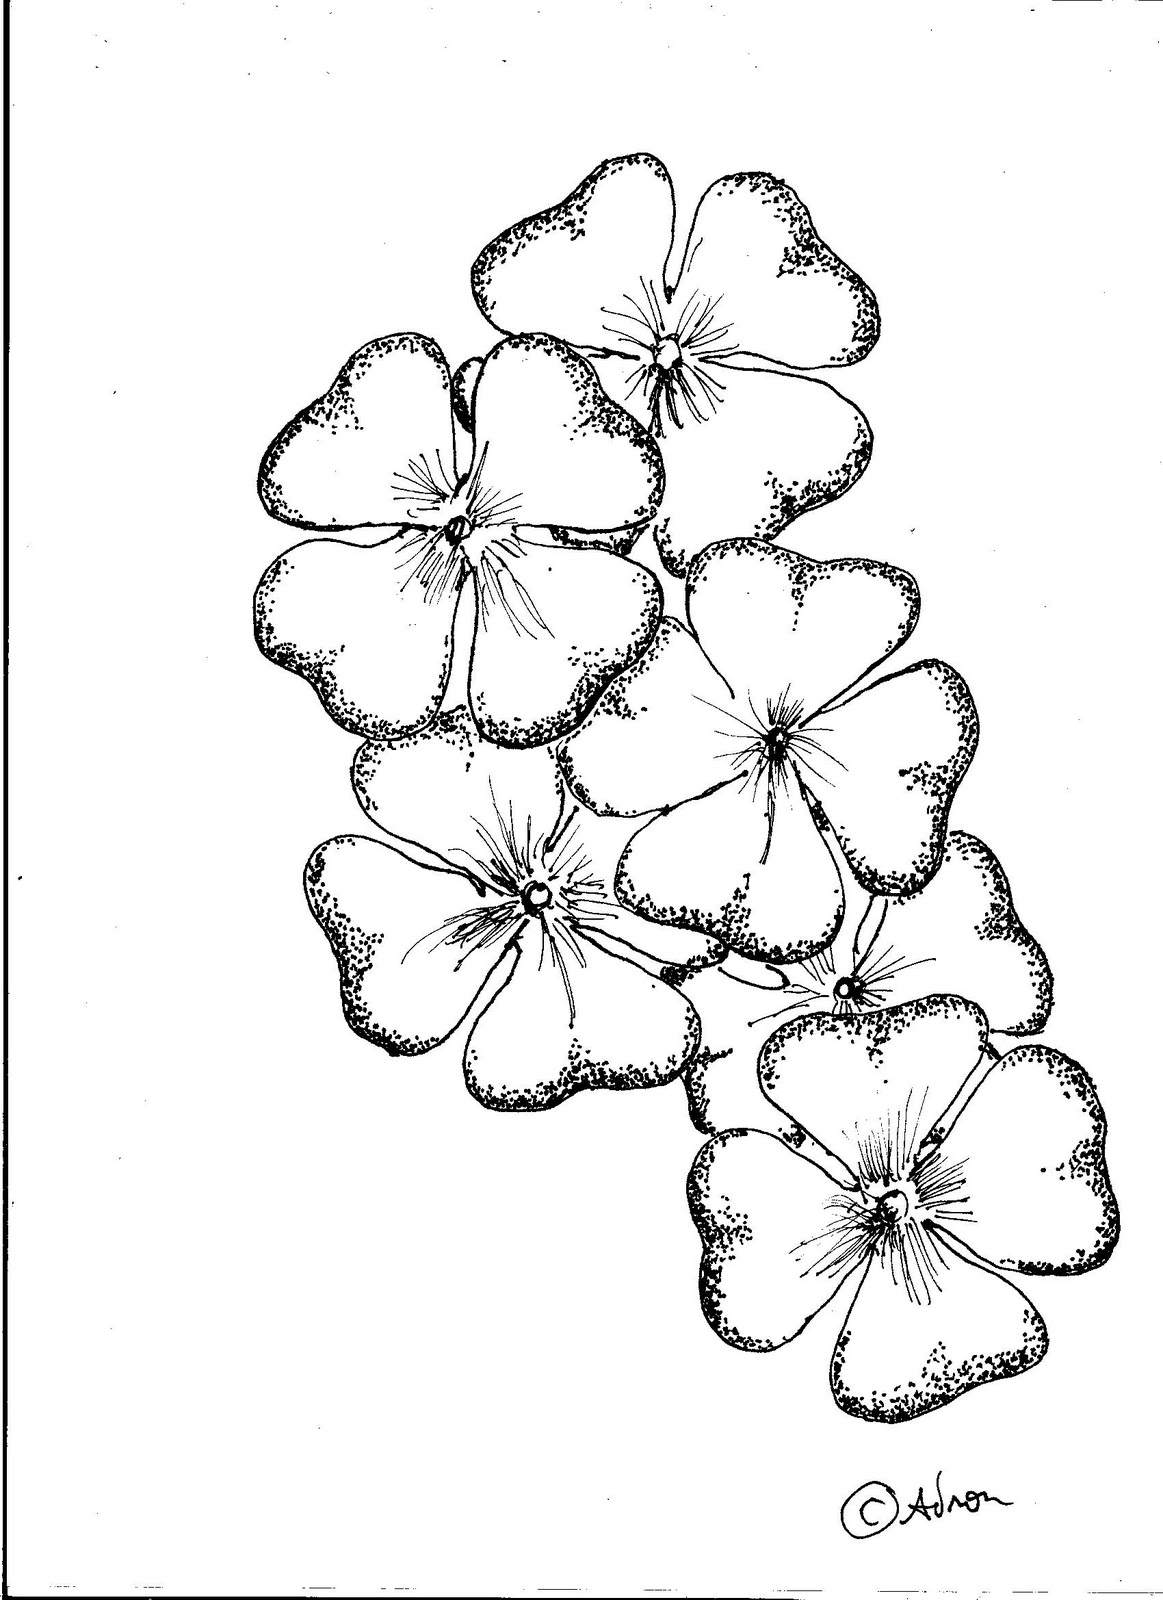 The Best Free Clover Drawing Images Download From 50 Free